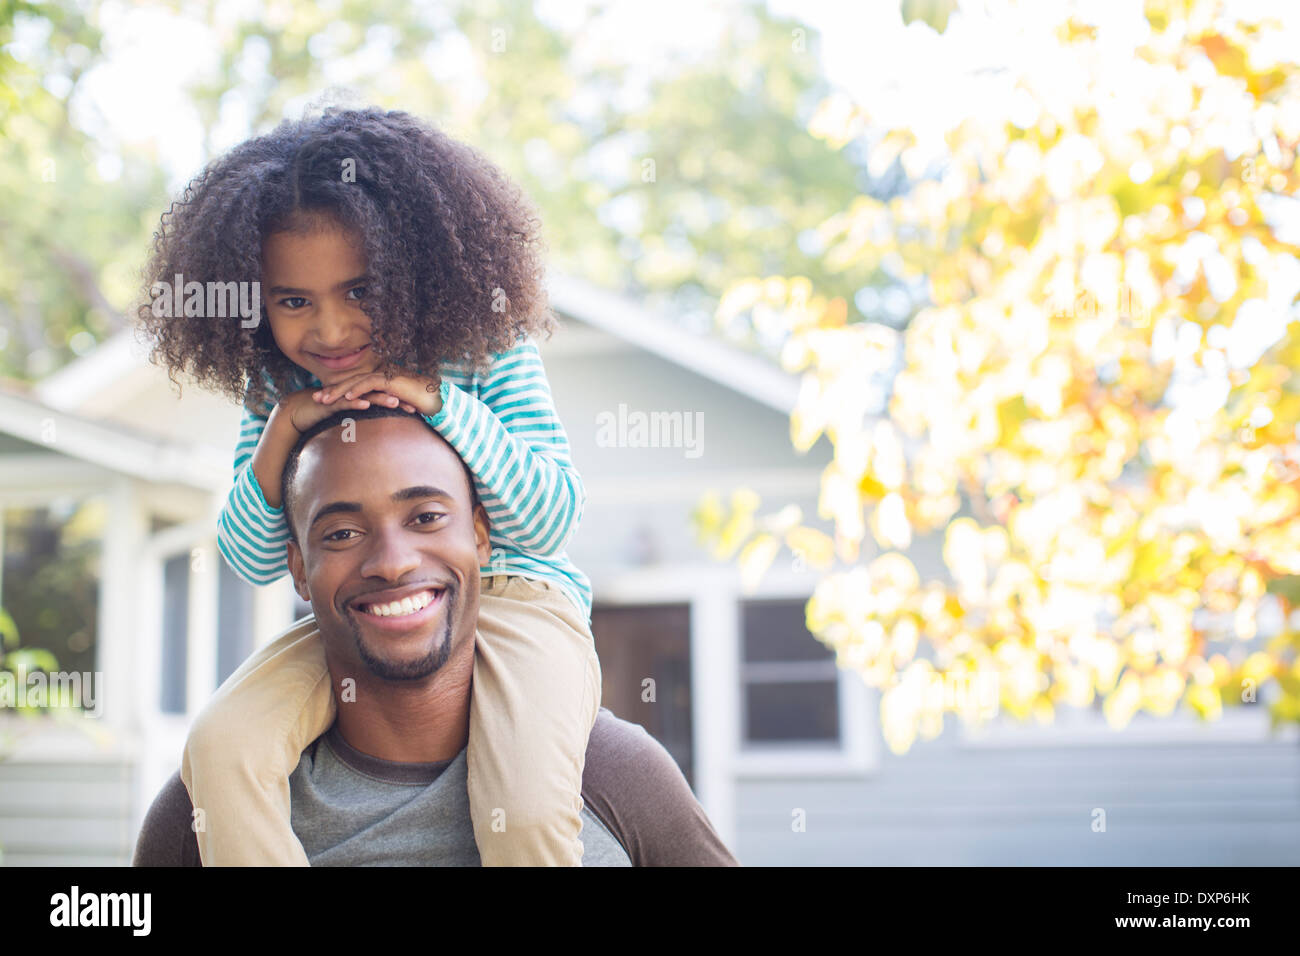 Portrait of happy father carrying daughter on shoulders Photo Stock